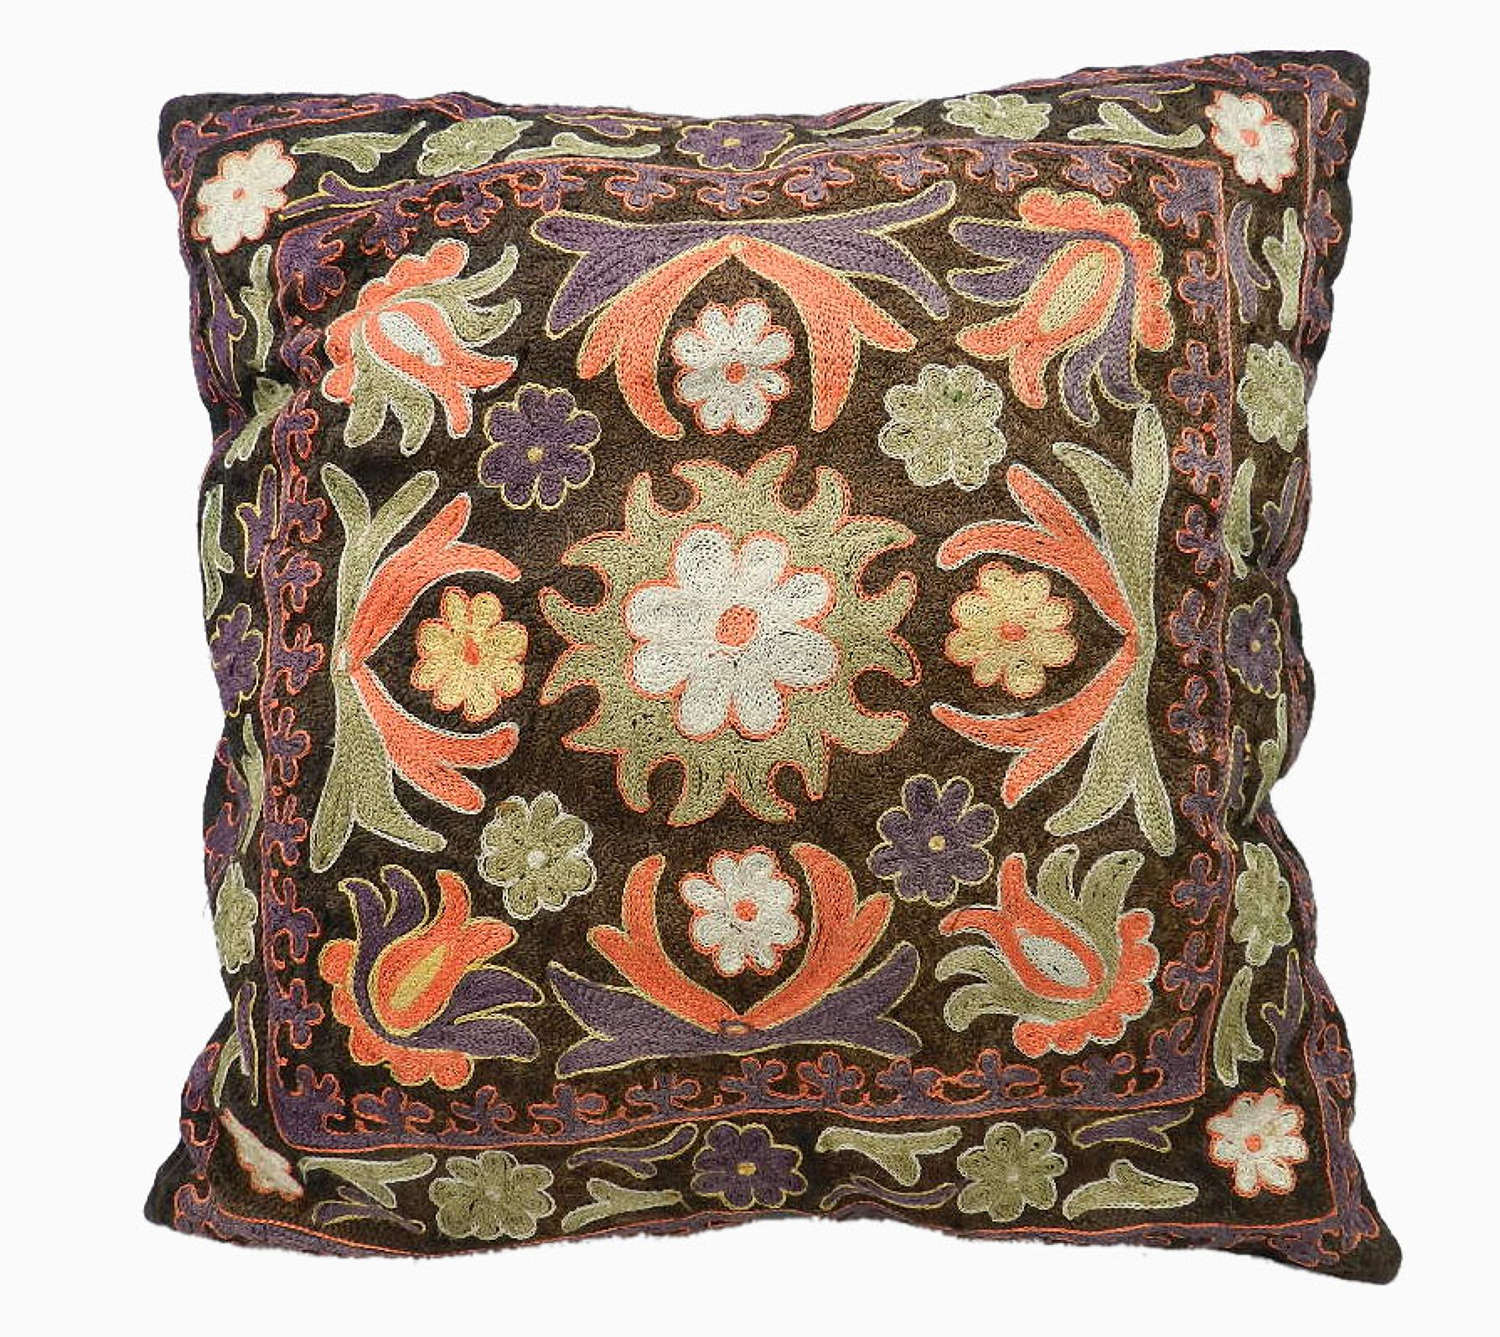 Vintage Turkish Embroidered Accent Cushion 3 available